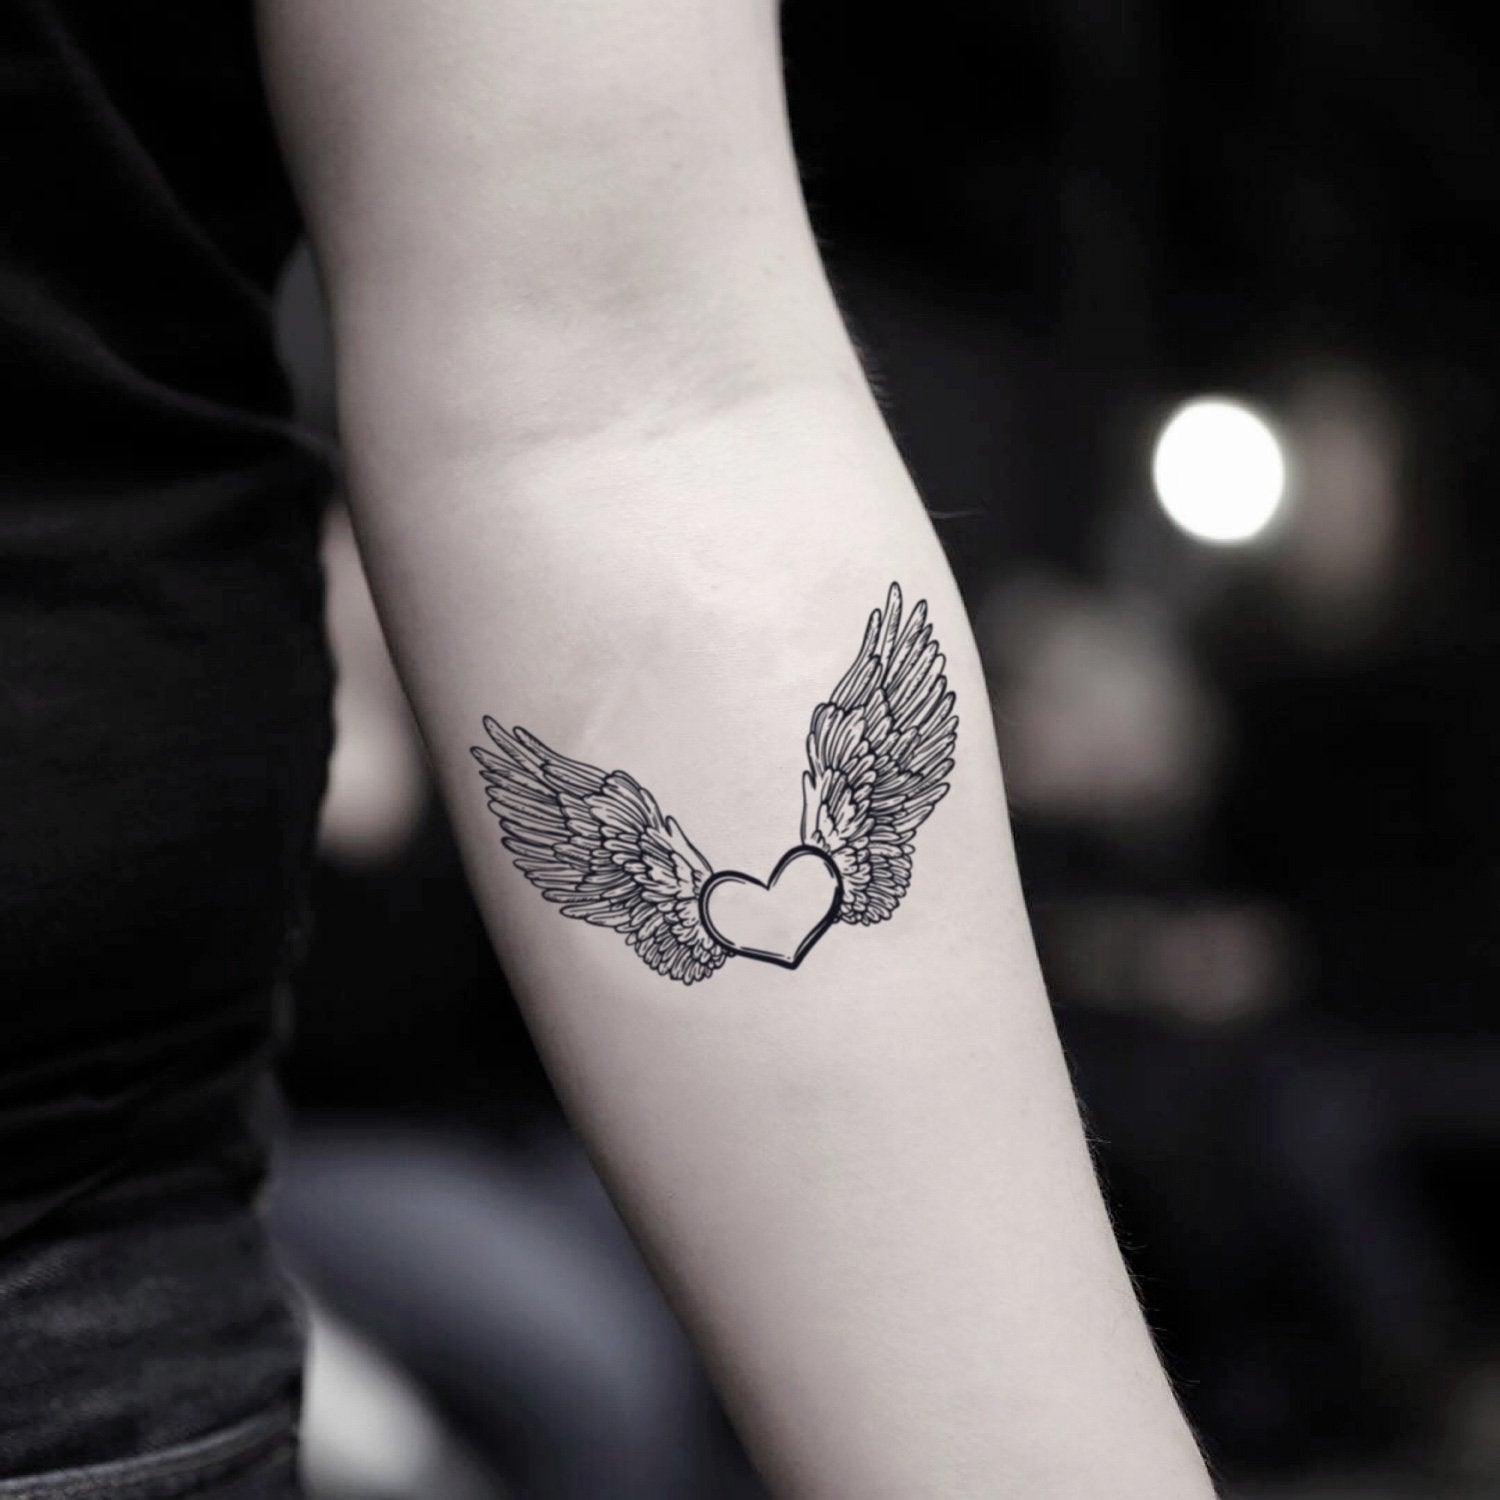 Angel Wings Tattoo Small Simple: Heart With Angel Wings Temporary Tattoo Sticker